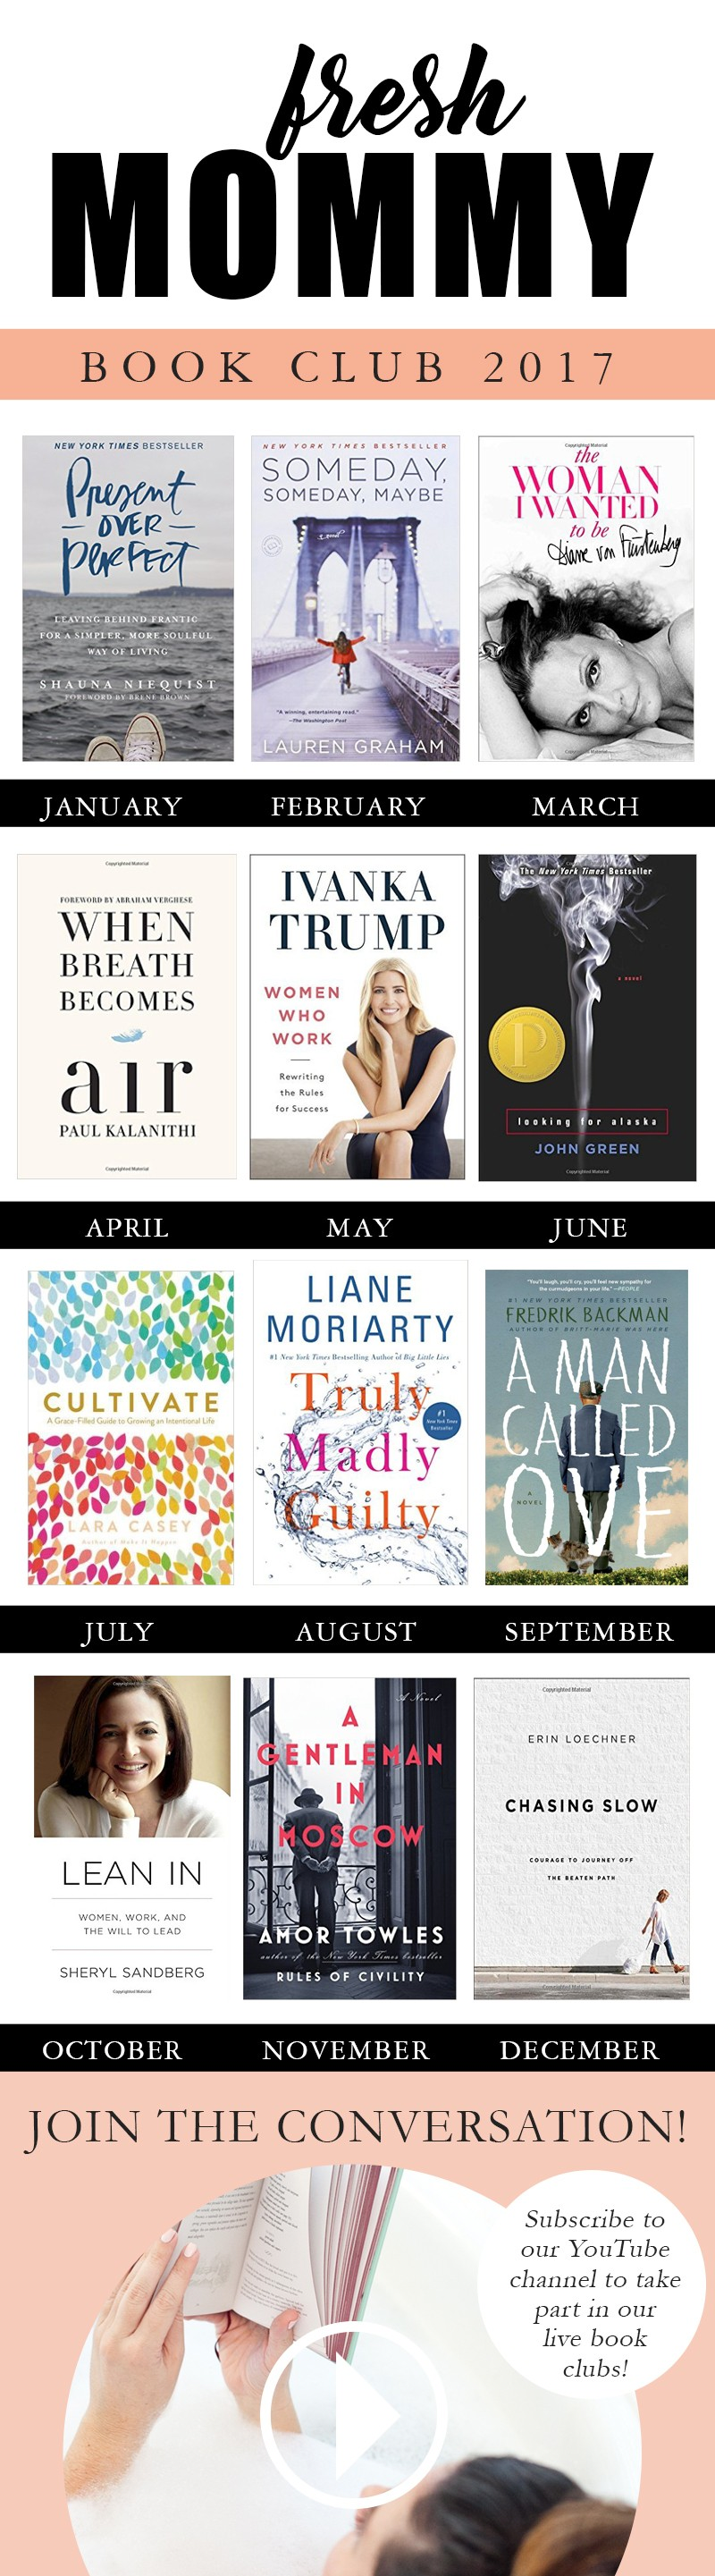 My 2017 Book Club Picks and Plan | #FreshMommyReads | Ever feel like your reading list is longer than you can finish? Well, put that aside for the moment and join us in our new #FreshMommyReads BOOK CLUB!! We've rounded up TOP picks from all different genres and will be having live reviews and conversations right here on this channel and live events at our studio every month as well!